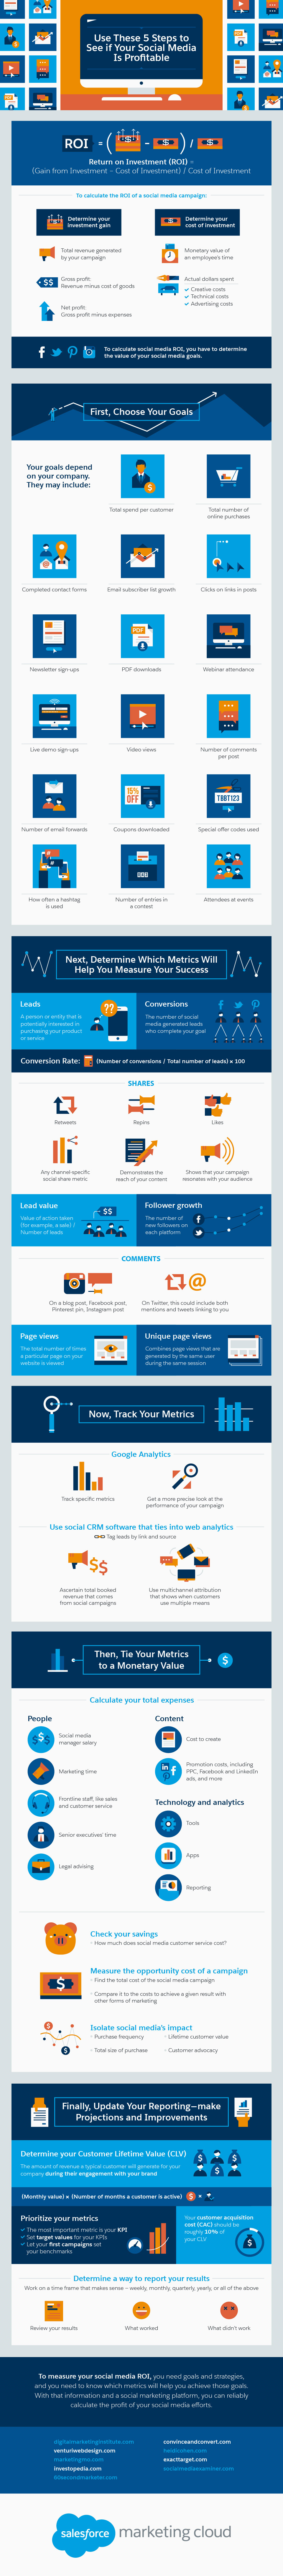 5 Steps to Social Media ROI [Infographic] | Social Media Today